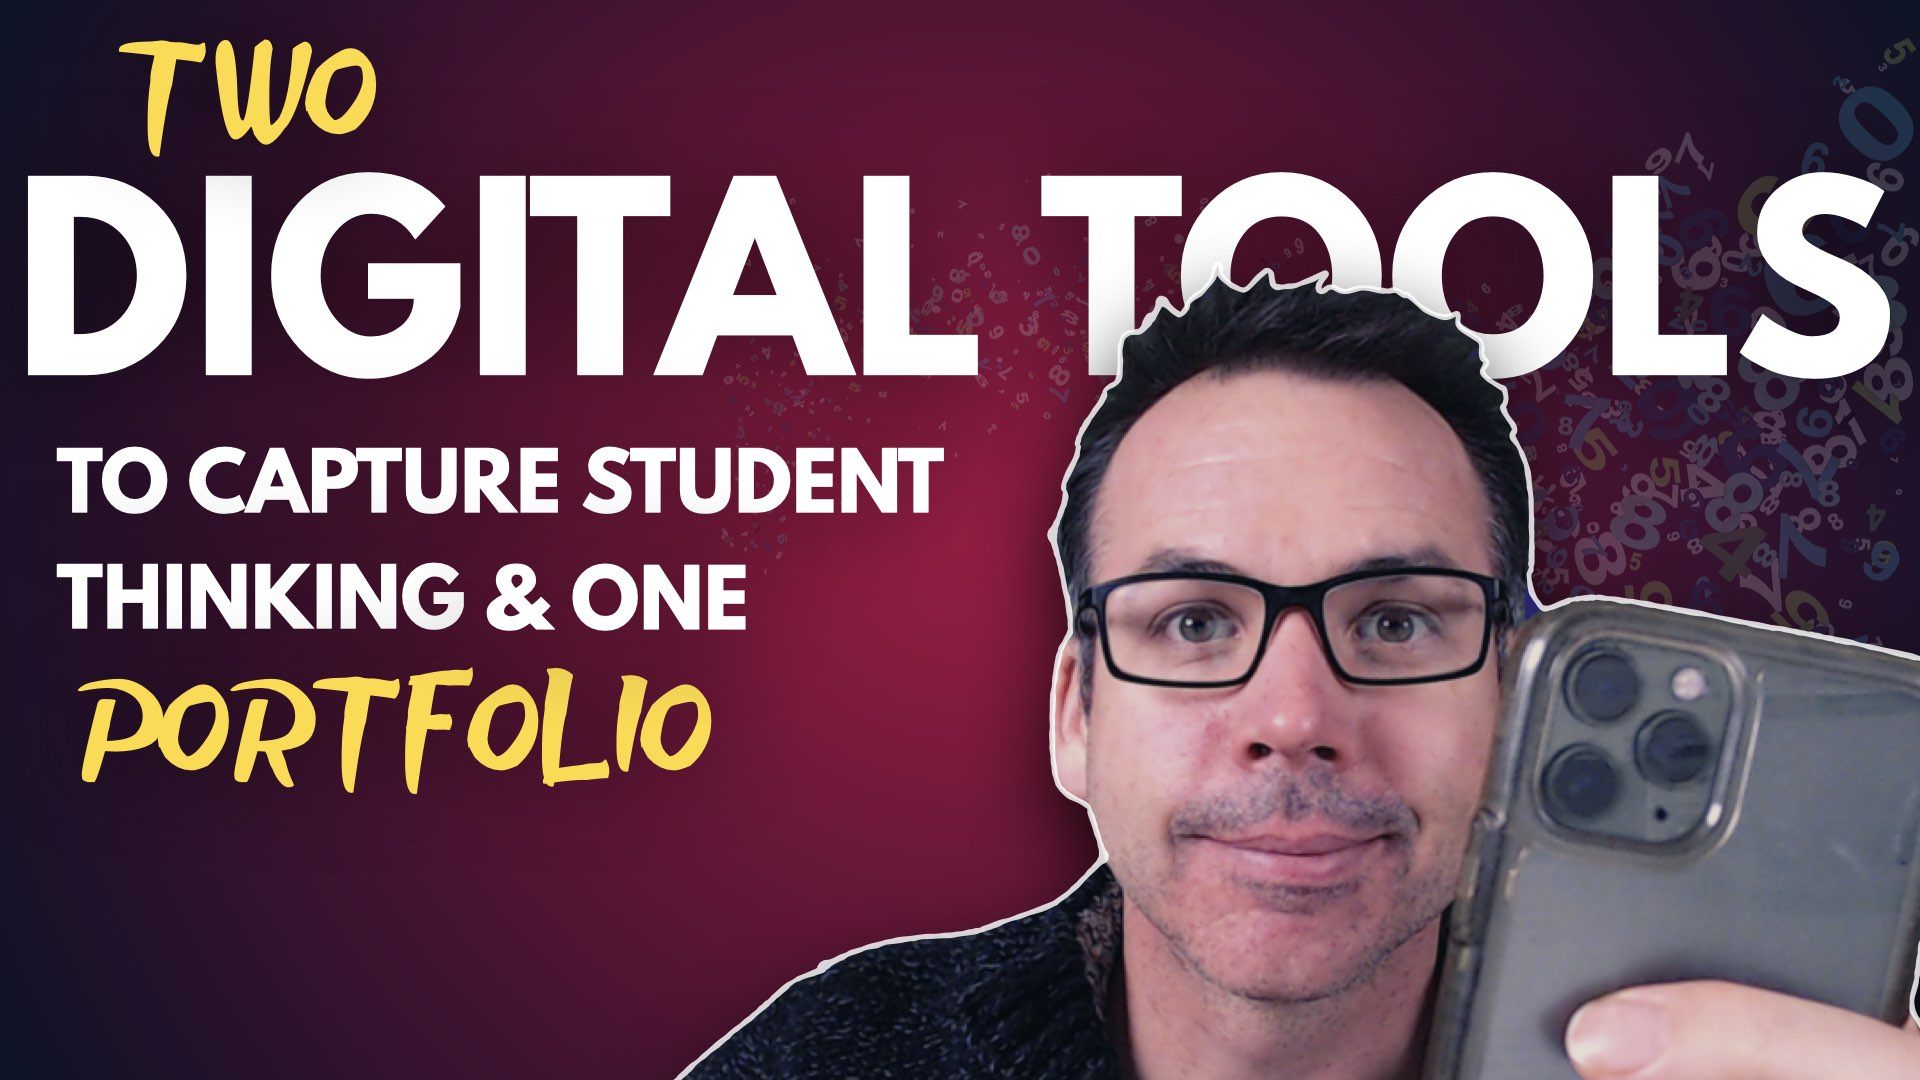 Two Digital Tools To Capture Student Thinking & One Portfolio